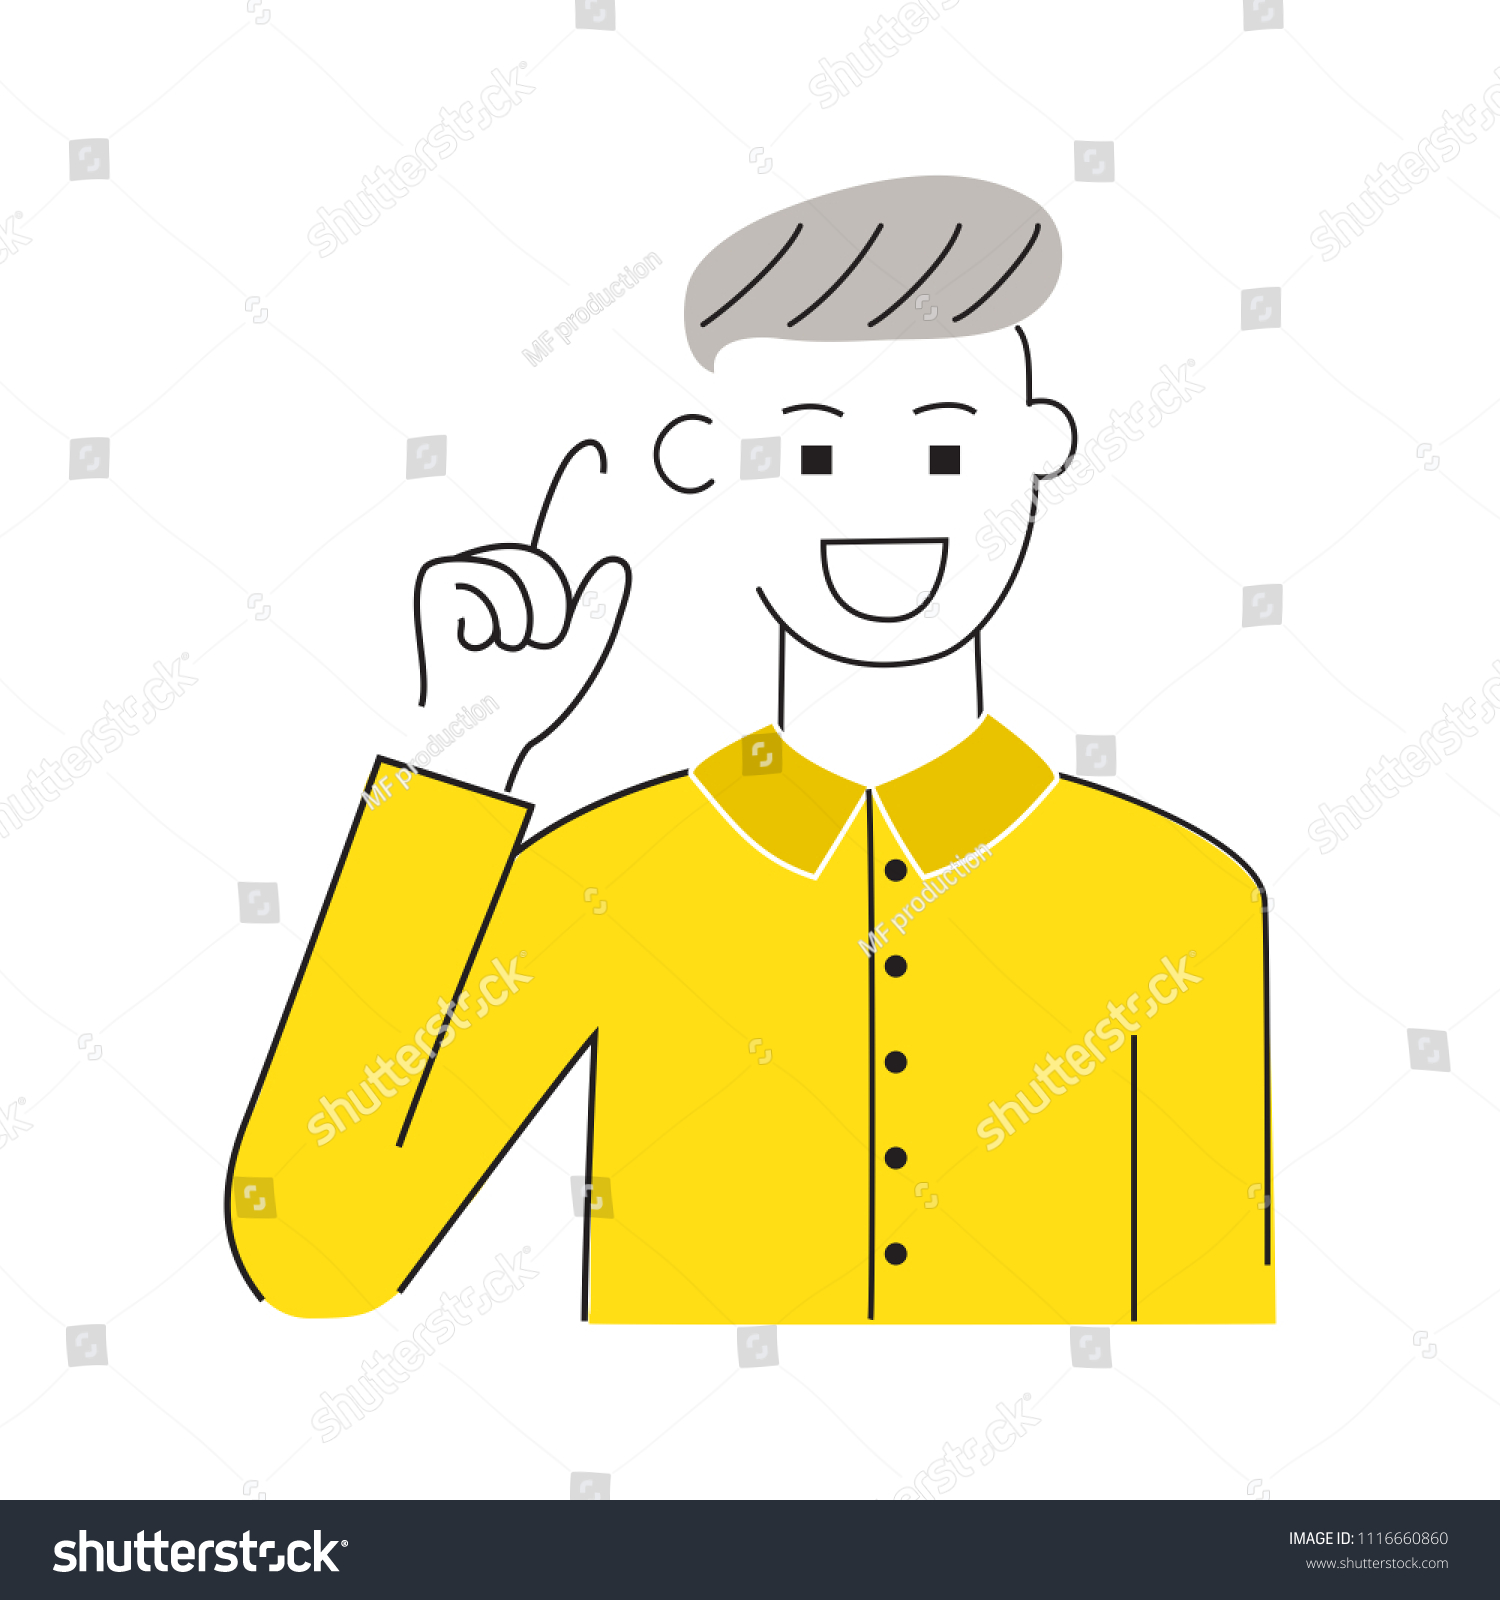 Man Have Good Idea Isolated On Stock Vector 1116660860 - Shutterstock